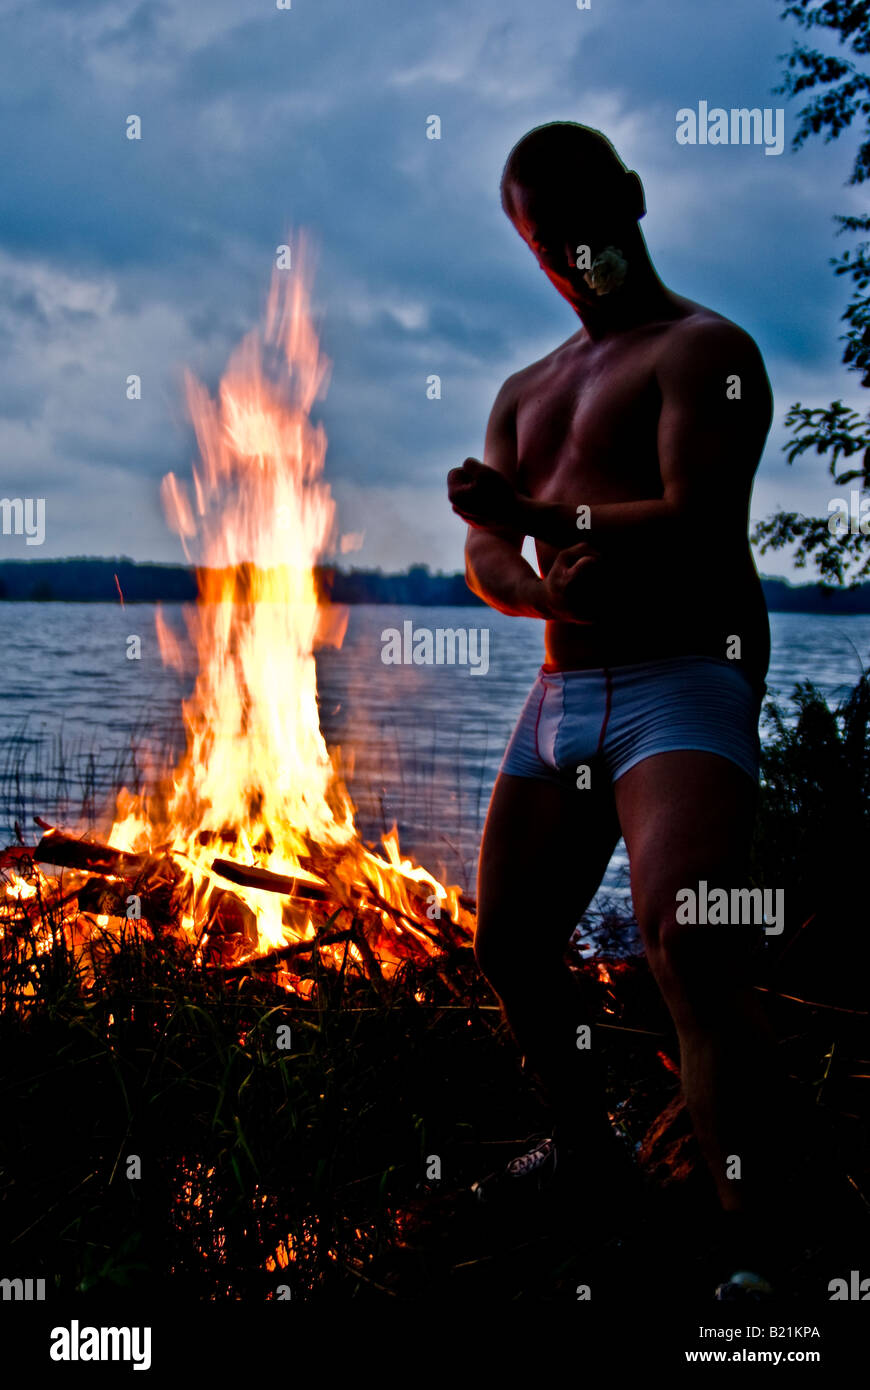 A crazy finn flexes his muscles next to a traditional finnish midsummer pyre - Stock Image